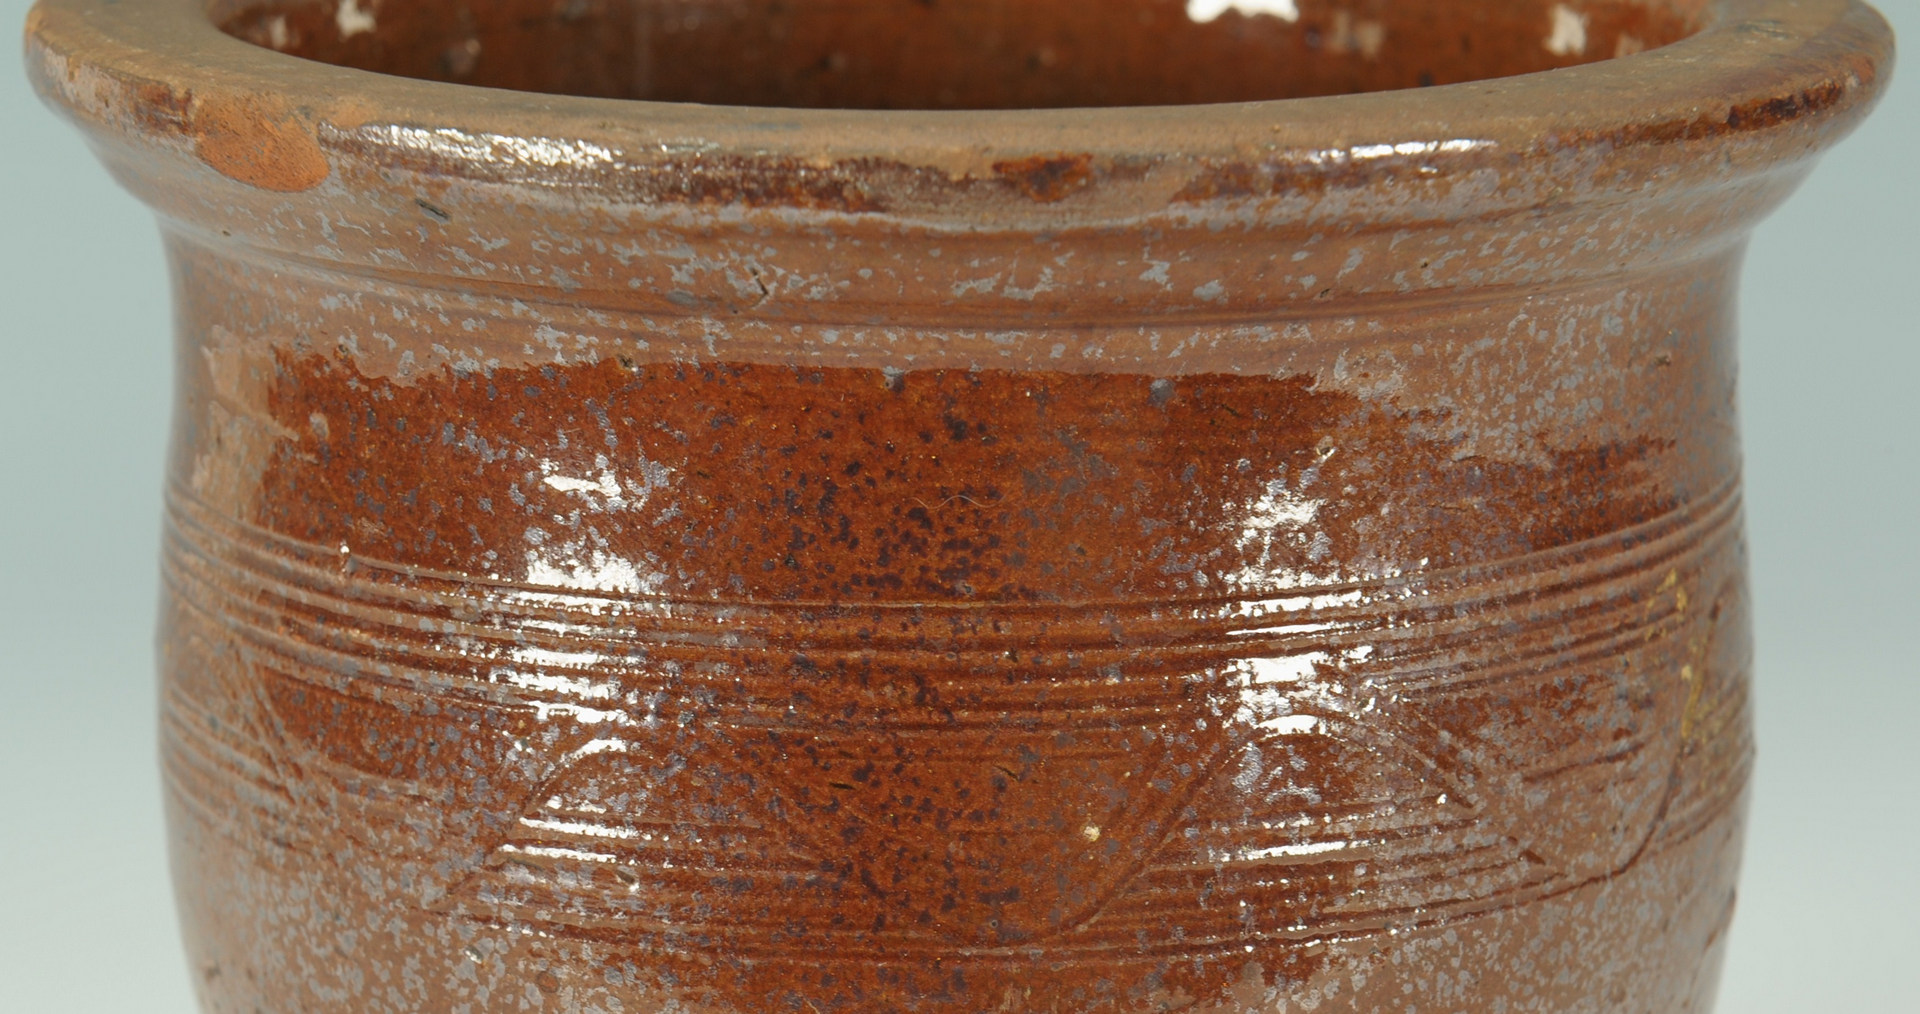 Lot 139: East TN Redware Pottery Cream pot, attrib. Cain